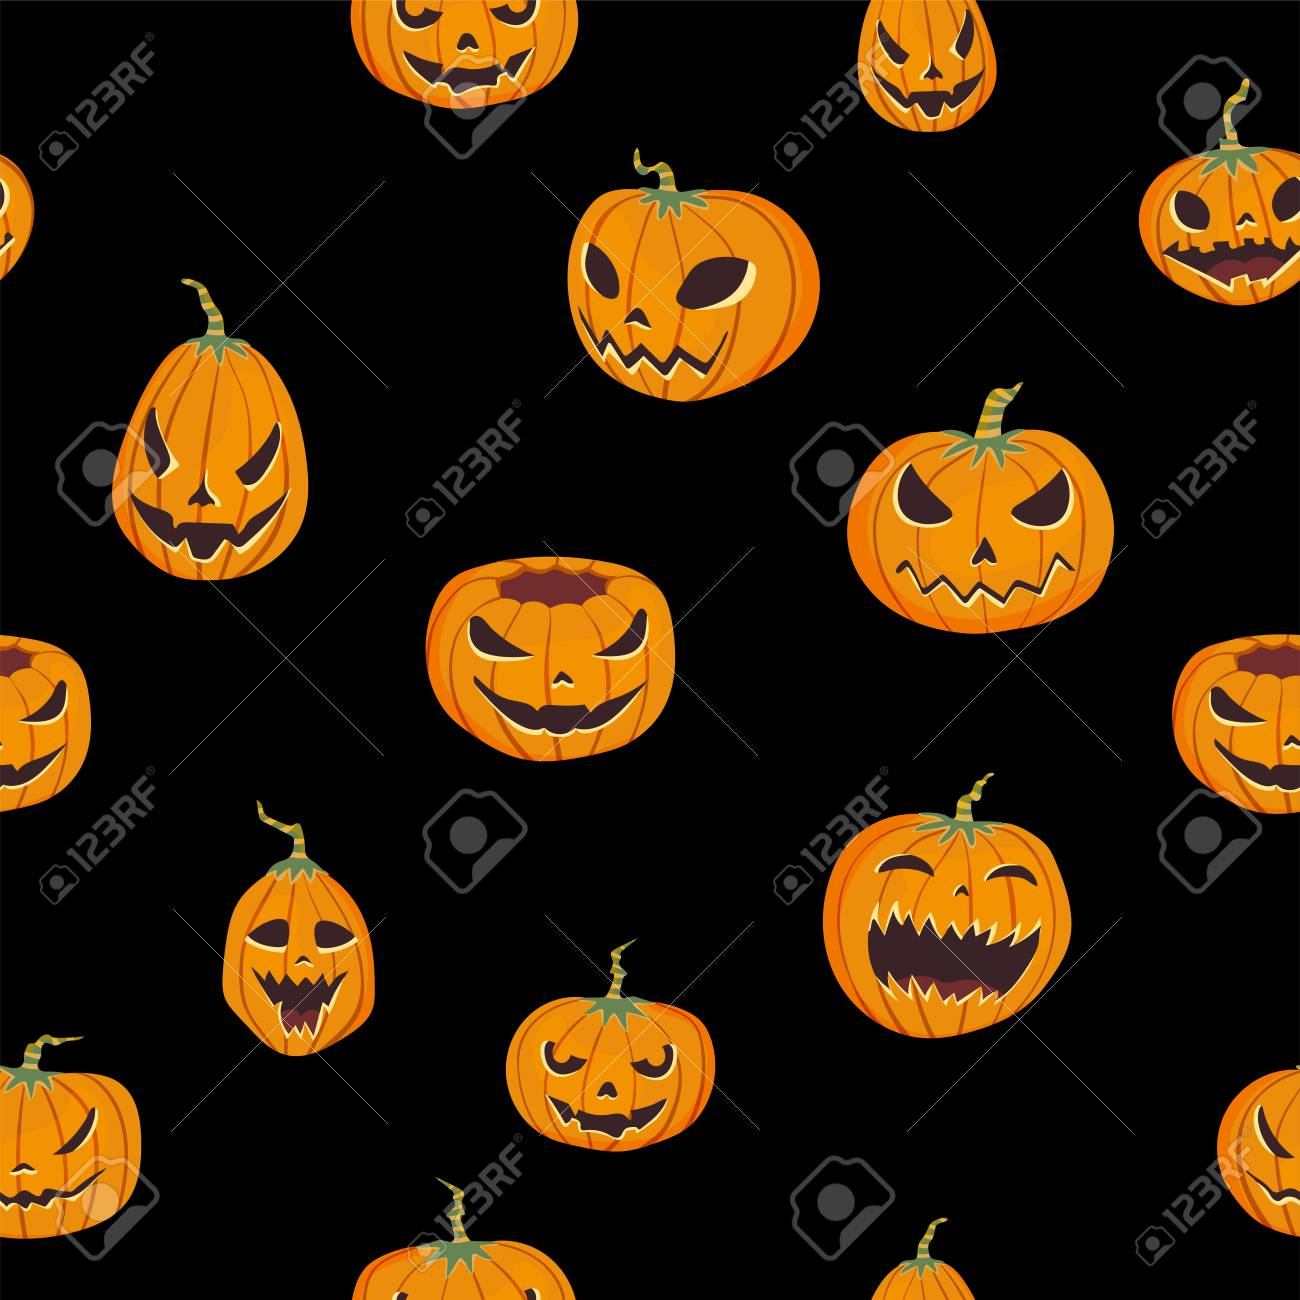 Free Halloween Pictures For Carving Pumpkins 41 Printable And Free